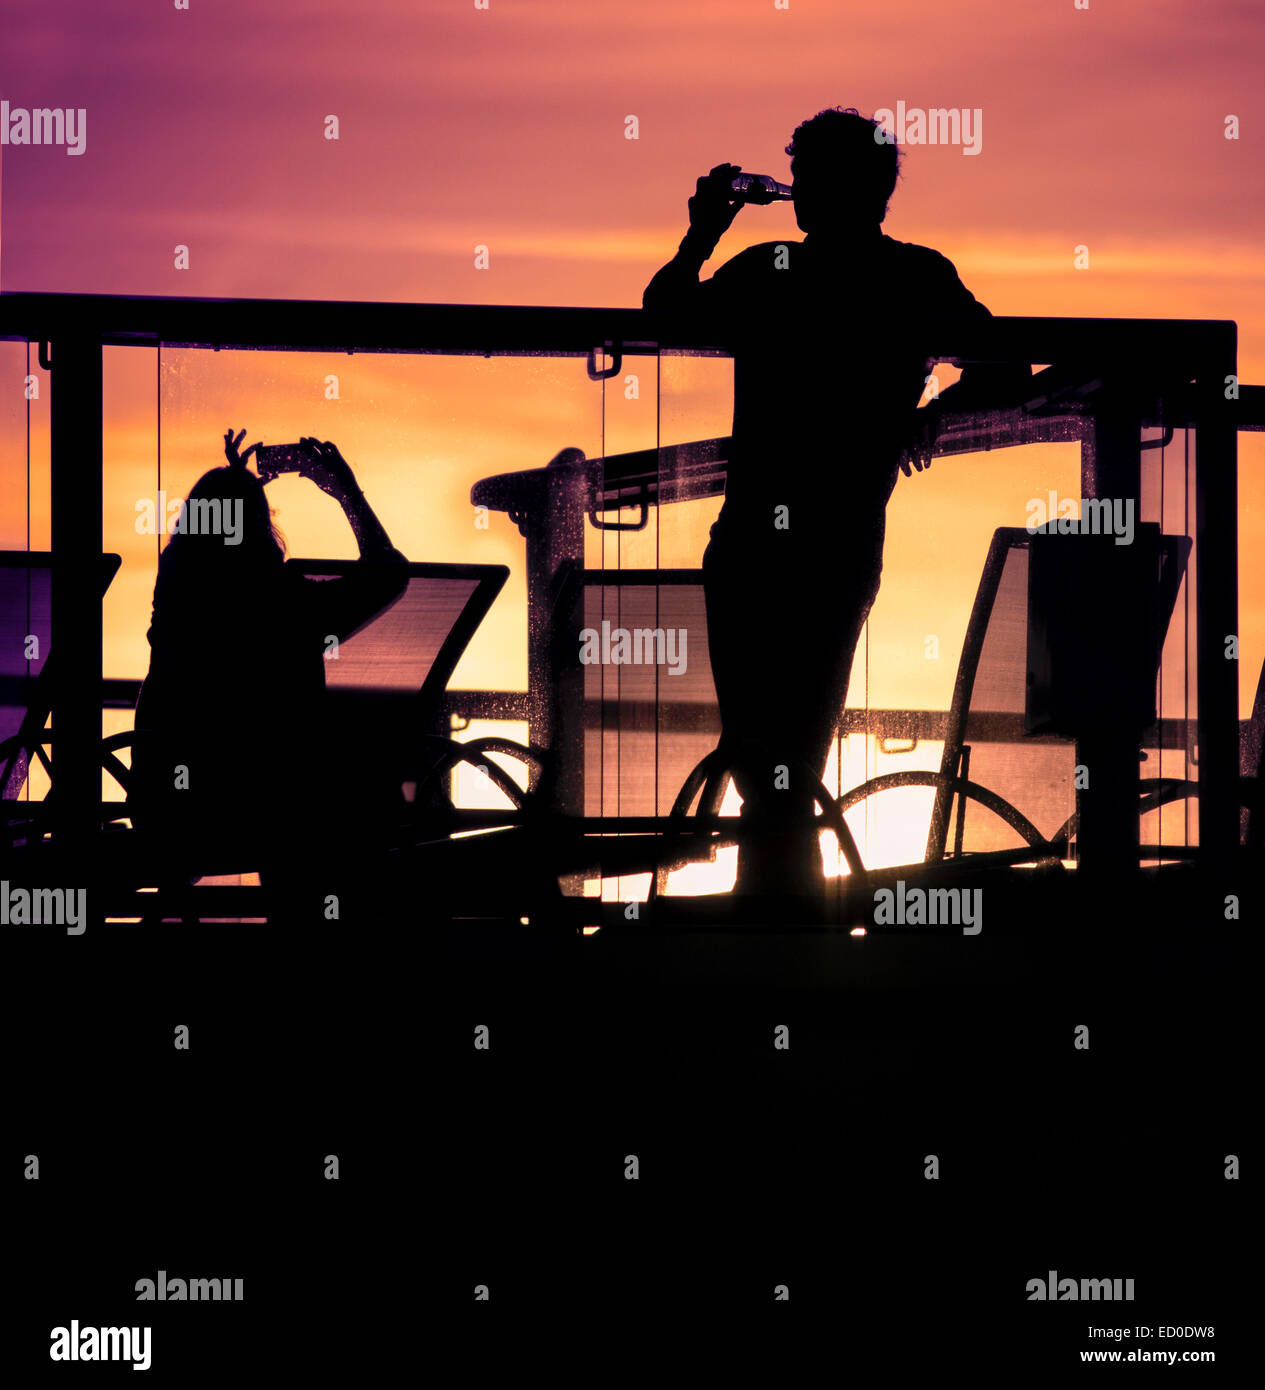 England, Southampton, Silhouettes of couple relaxing on balcony at sunset Stock Photo